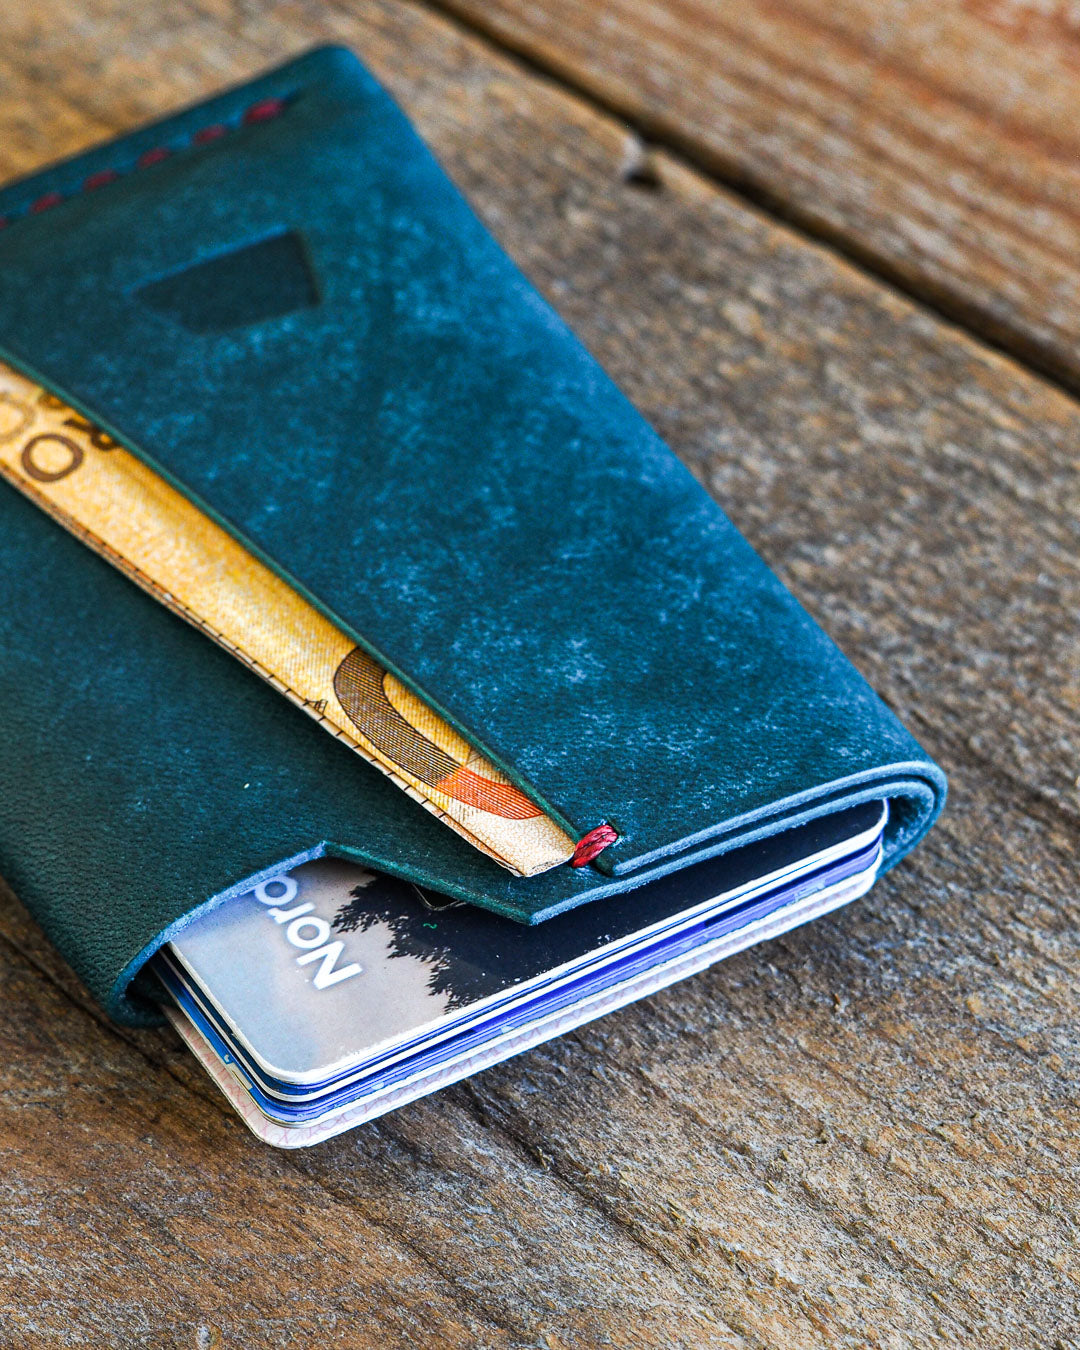 Luava handmade leather wallet handcrafted card holder wrap cardholder made in finland vortex maya turquoise front in use angle close up